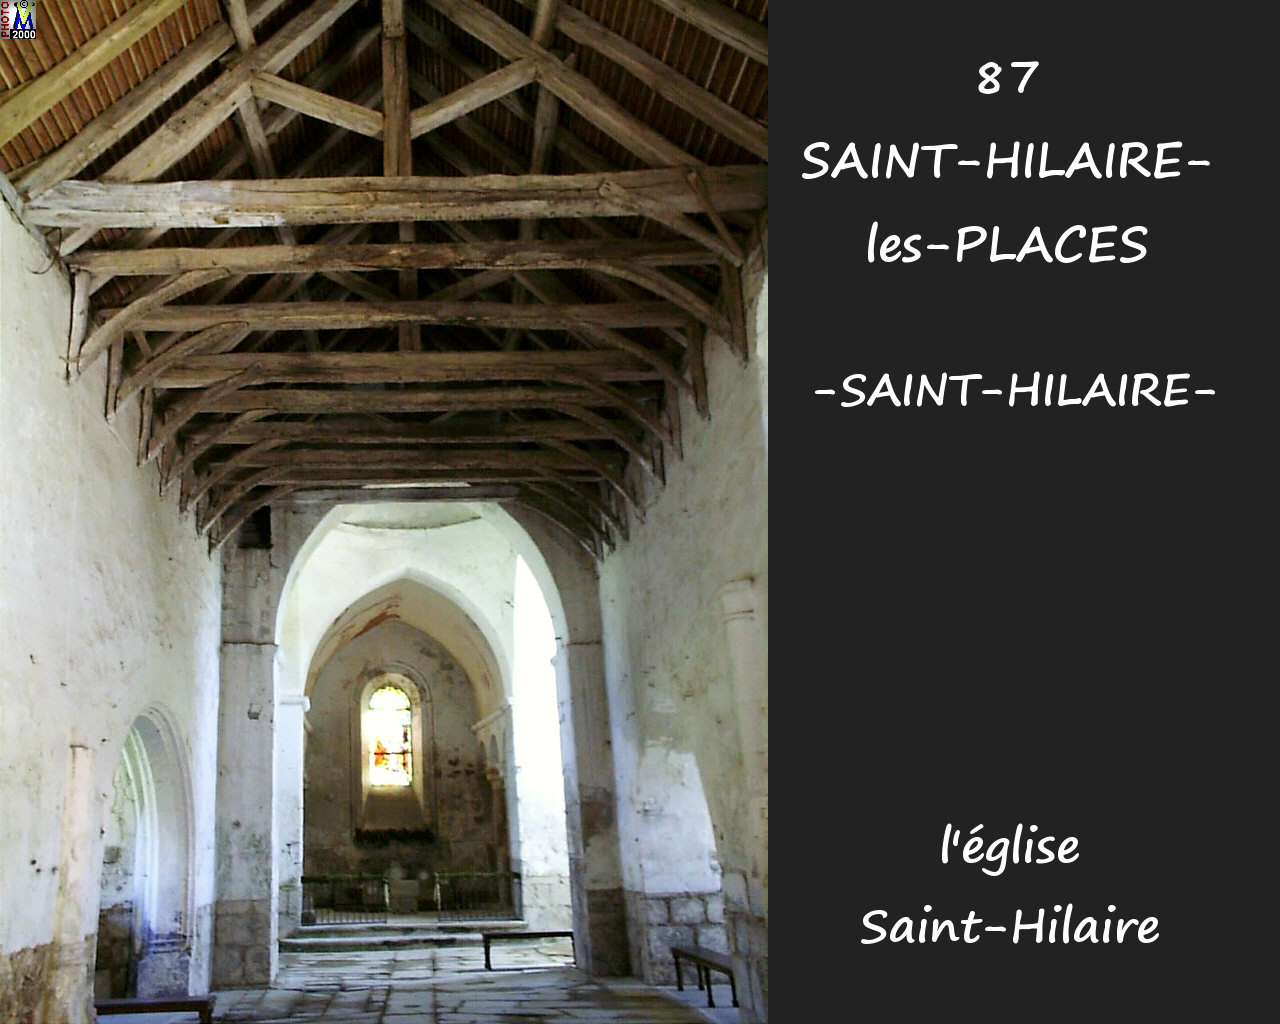 87StHILAIRE-PLACES_eglise_200.jpg